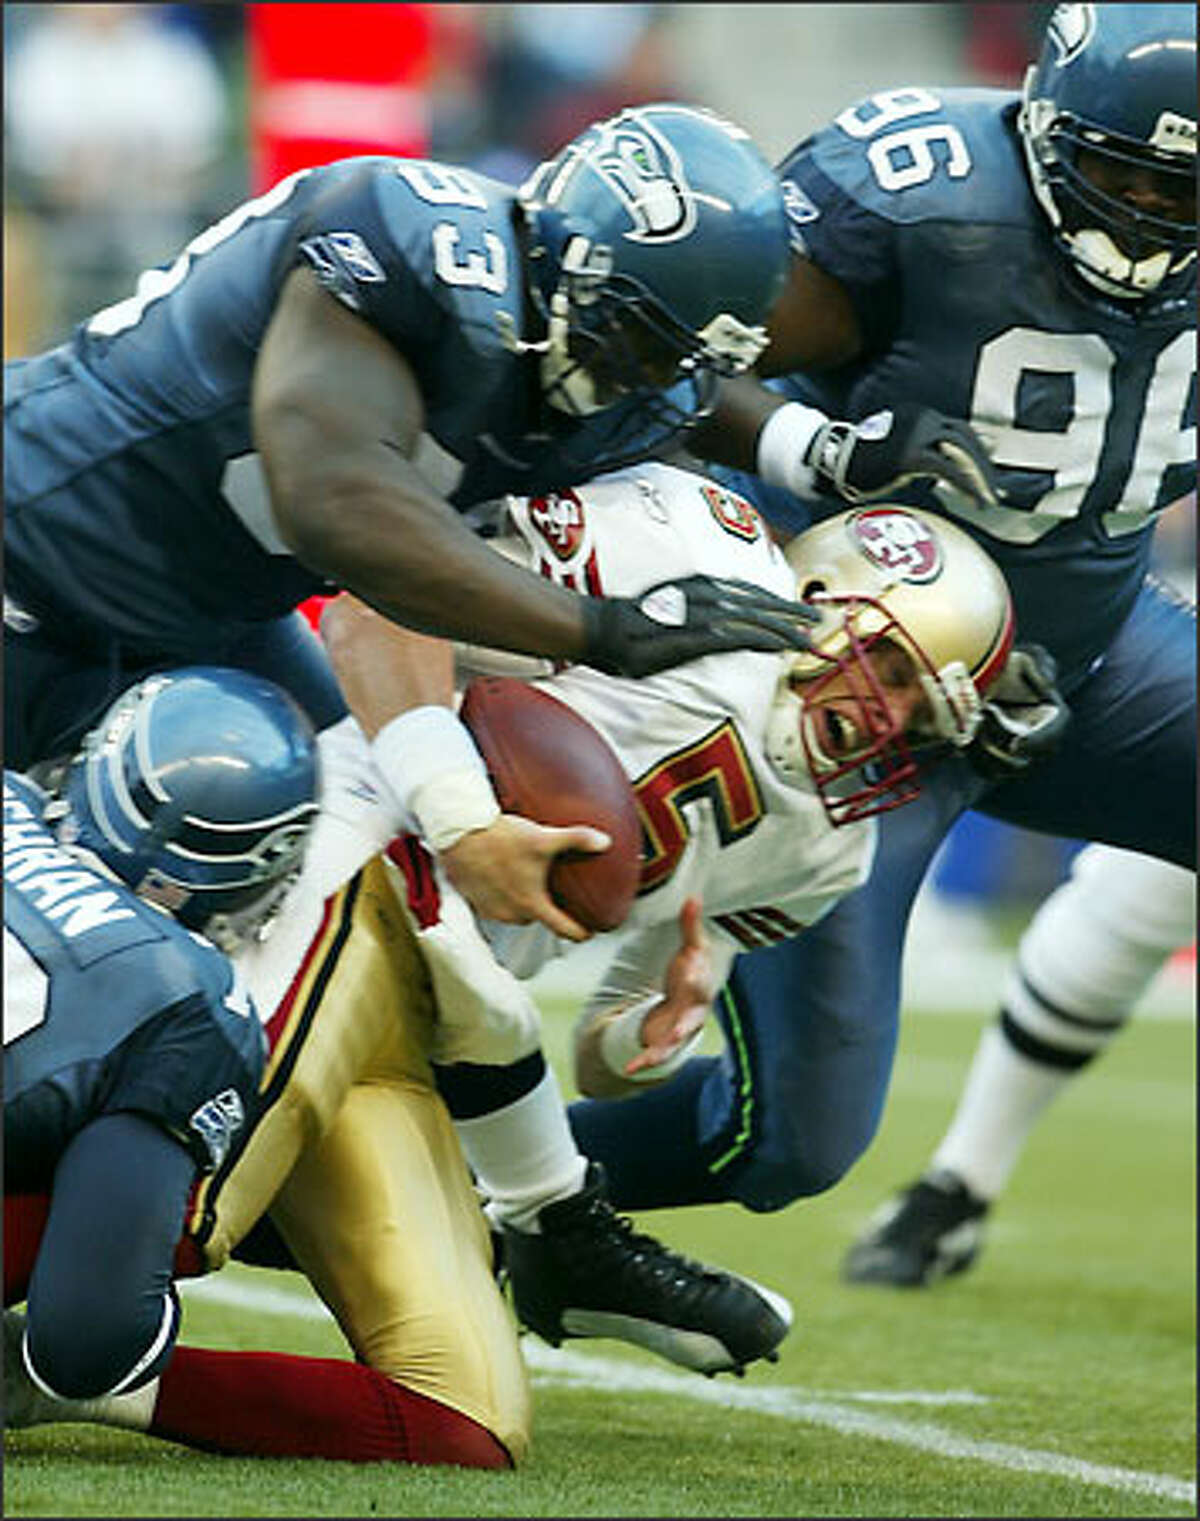 Seahawks' John Randall and Antonio Cochran pull down 49er's Jeff Garcia with 12:53 left in the first quarter of play at Seahawks Stadium Sunday.